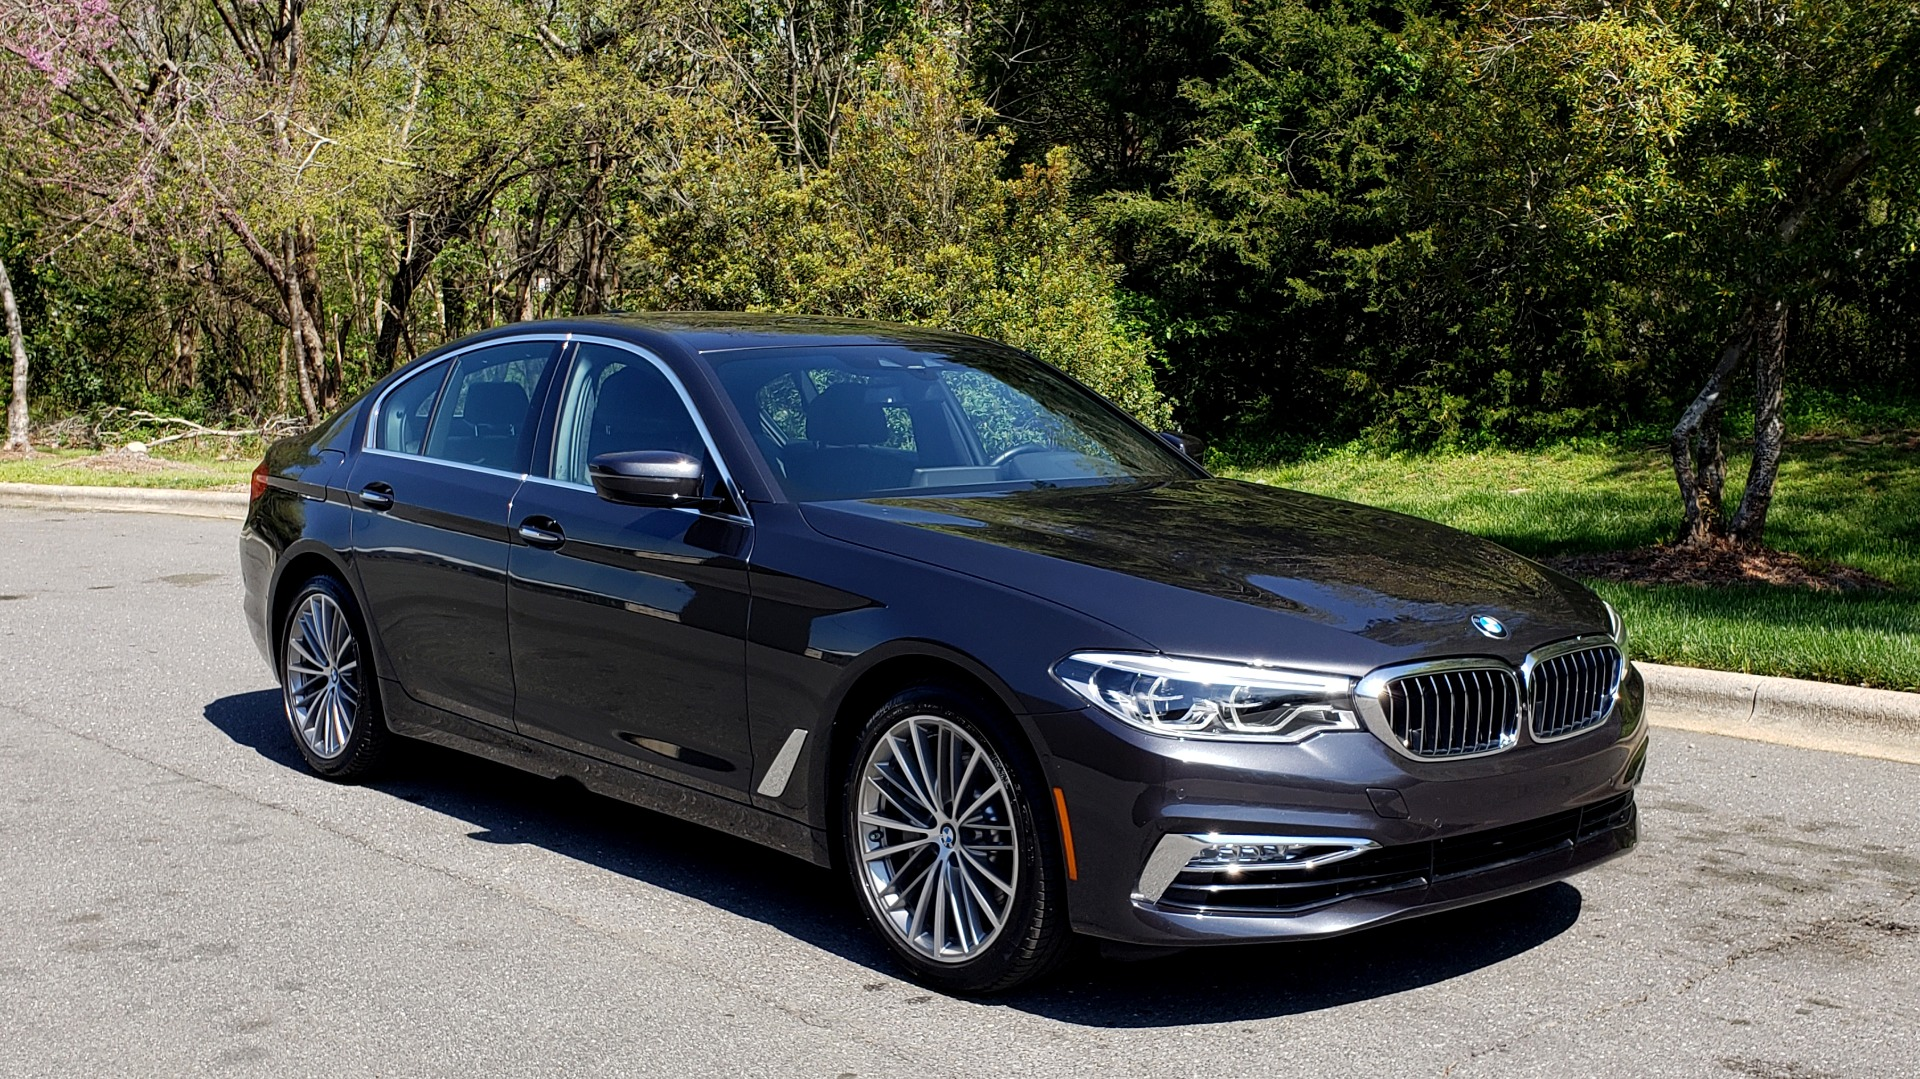 Used 2017 BMW 5 SERIES 540I PREMIUM / DRVR ASST PLUS / NAV / SNF / HARMAN/KARDON for sale Sold at Formula Imports in Charlotte NC 28227 4